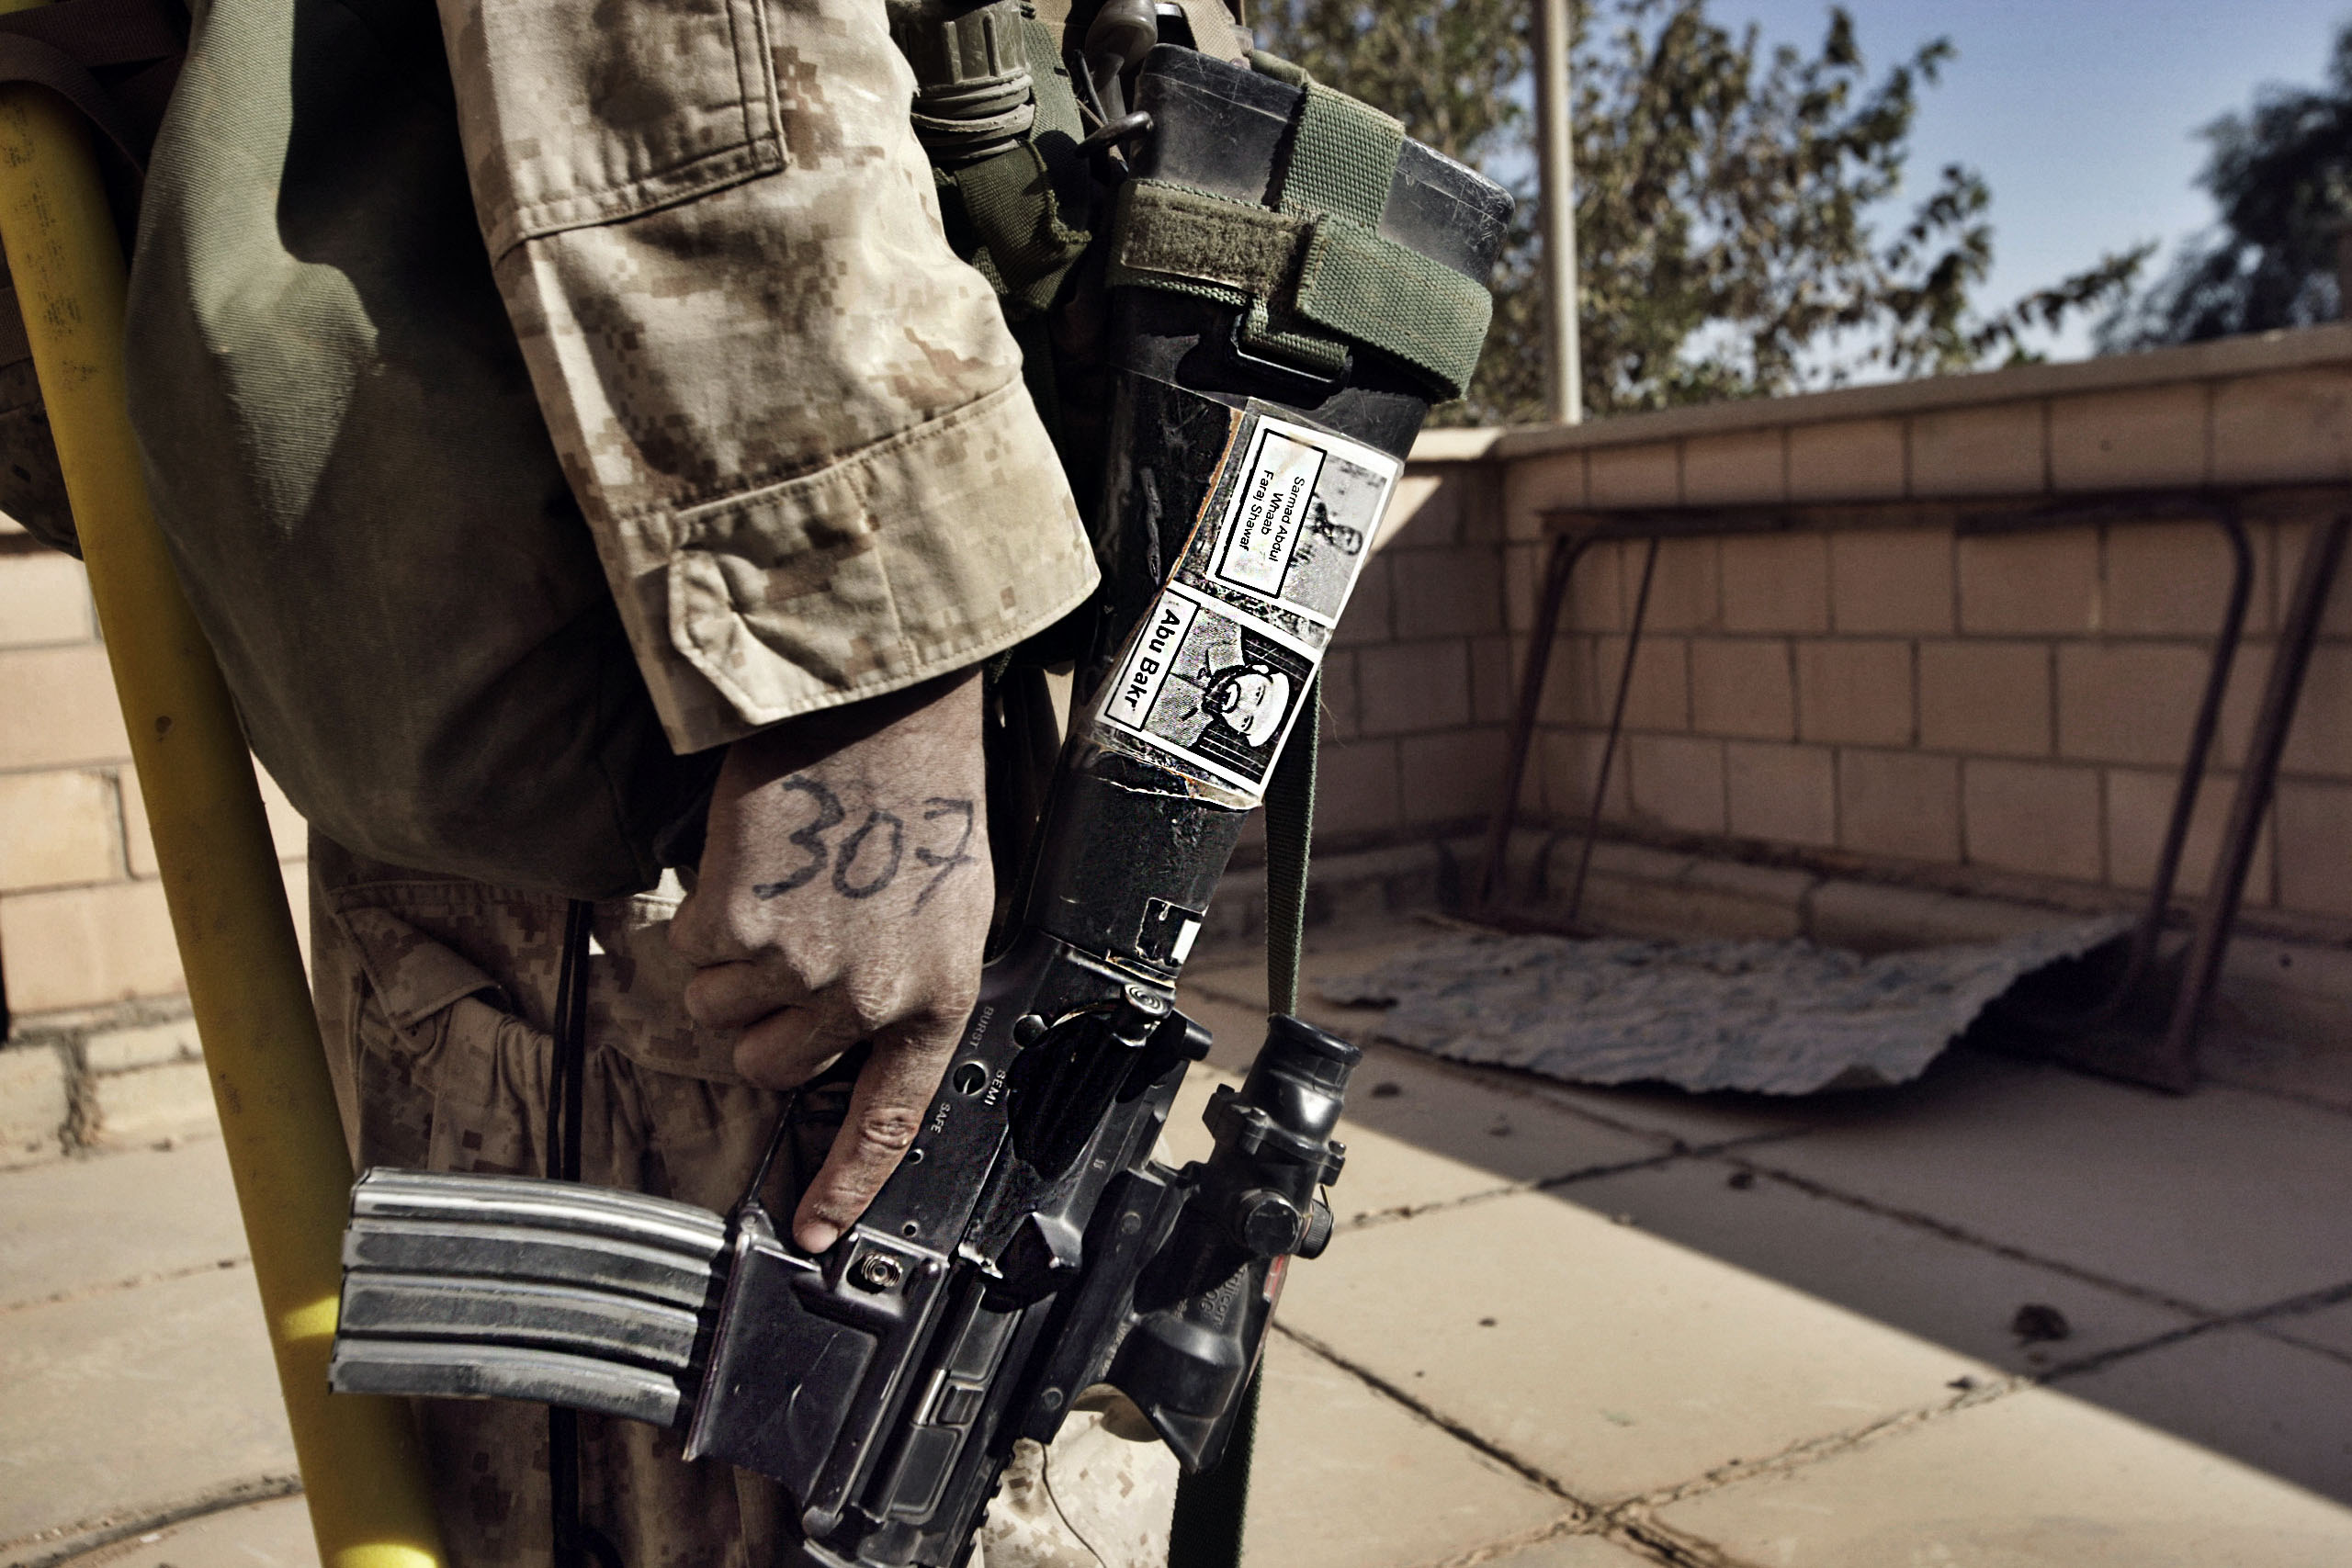 A Marine from Fox Co. 2nd Battalion 1st Marines holds his M-16 rifle with  pictures of suspected insurgents during the first day of Operation Steel Curtain, an effort to root out foreign fighters and extremists, Nov. 5, 2005.